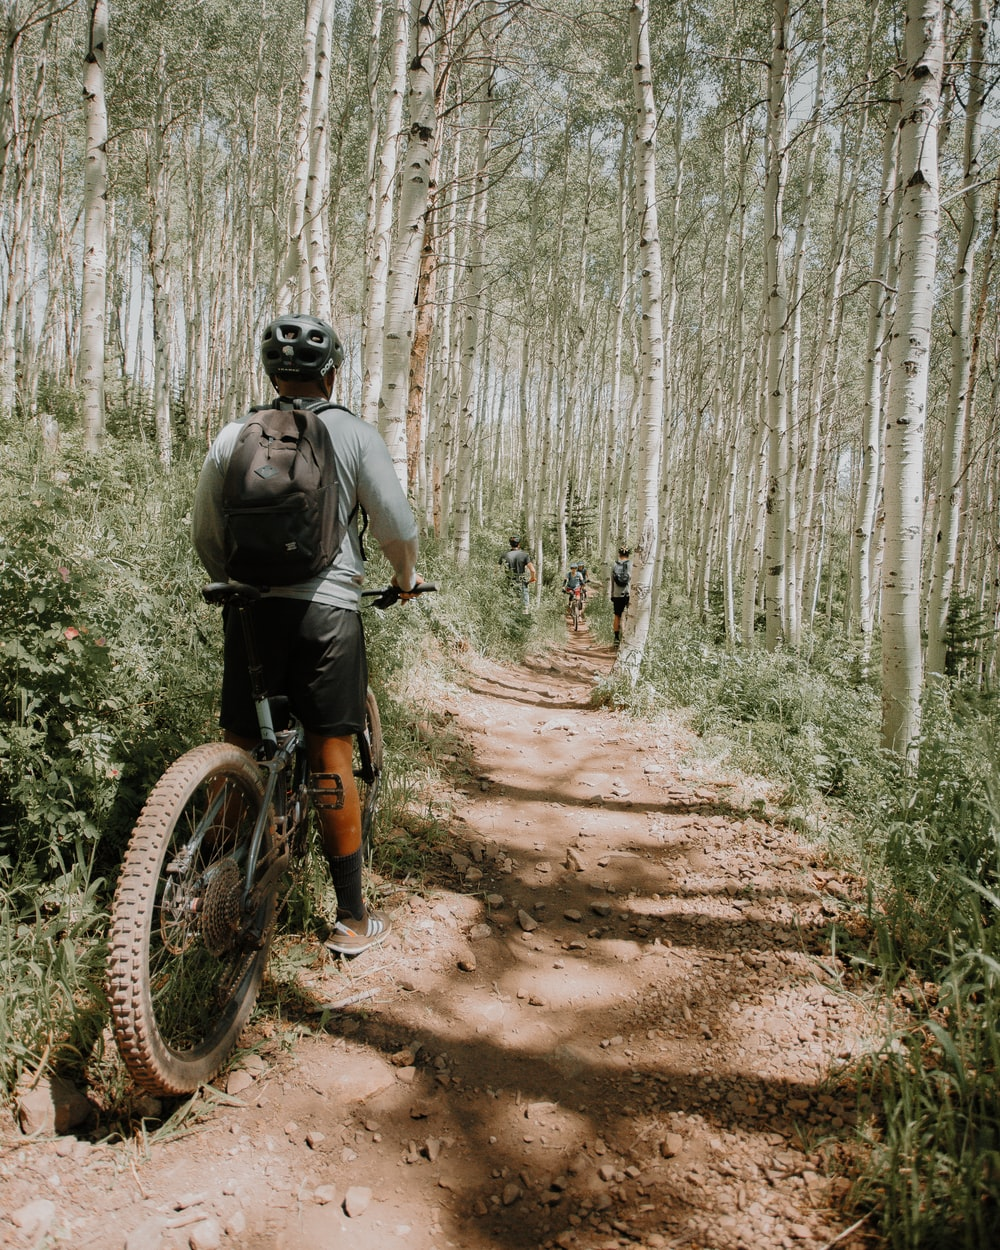 man in green jacket riding bicycle on dirt road during daytime